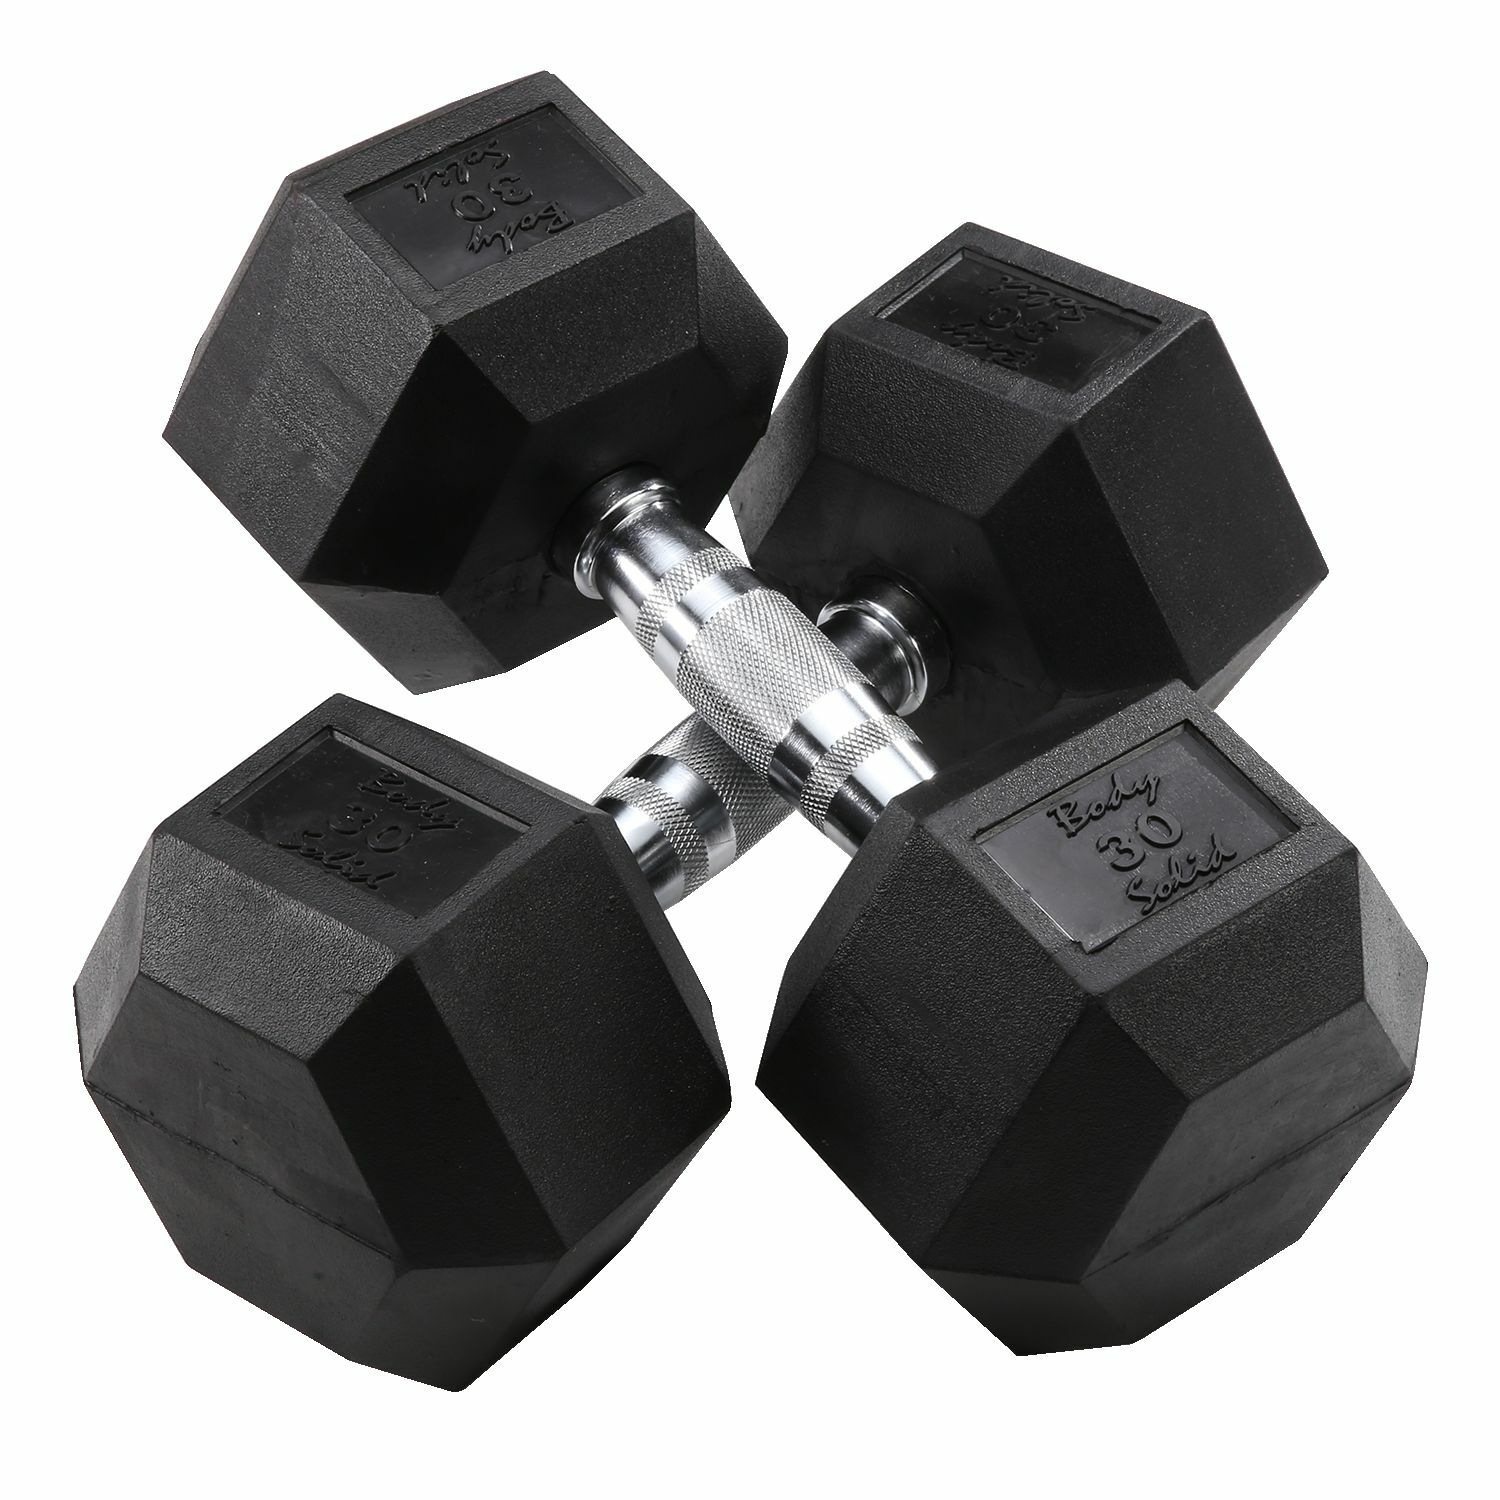 30 lb.  Rubber Coated Dumbbell Pair, Body-Solid SDR30  100% fit guarantee